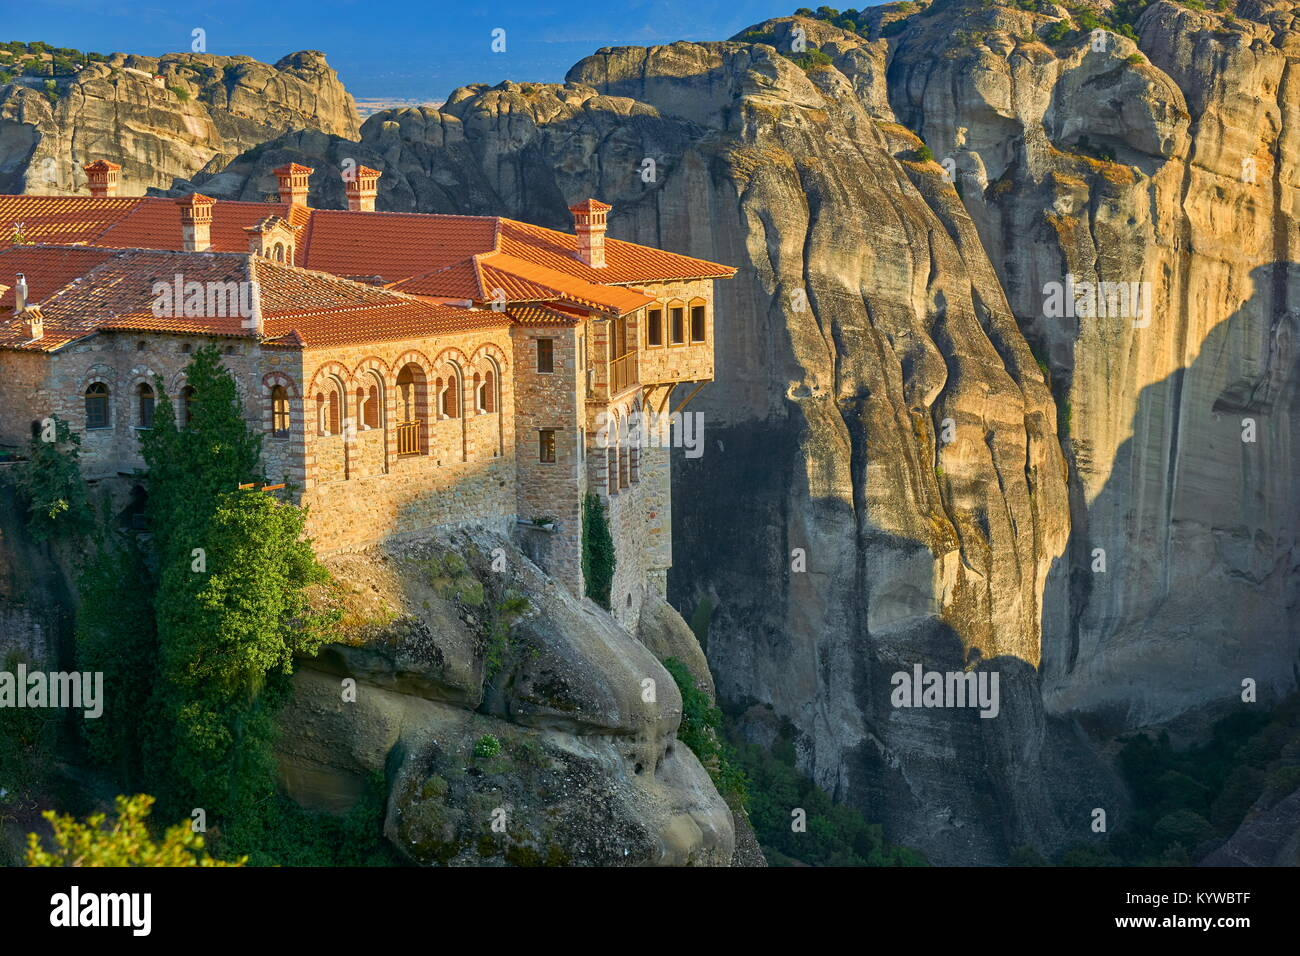 Varlaam Monastery at sunset time, Meteora, Greece - Stock Image